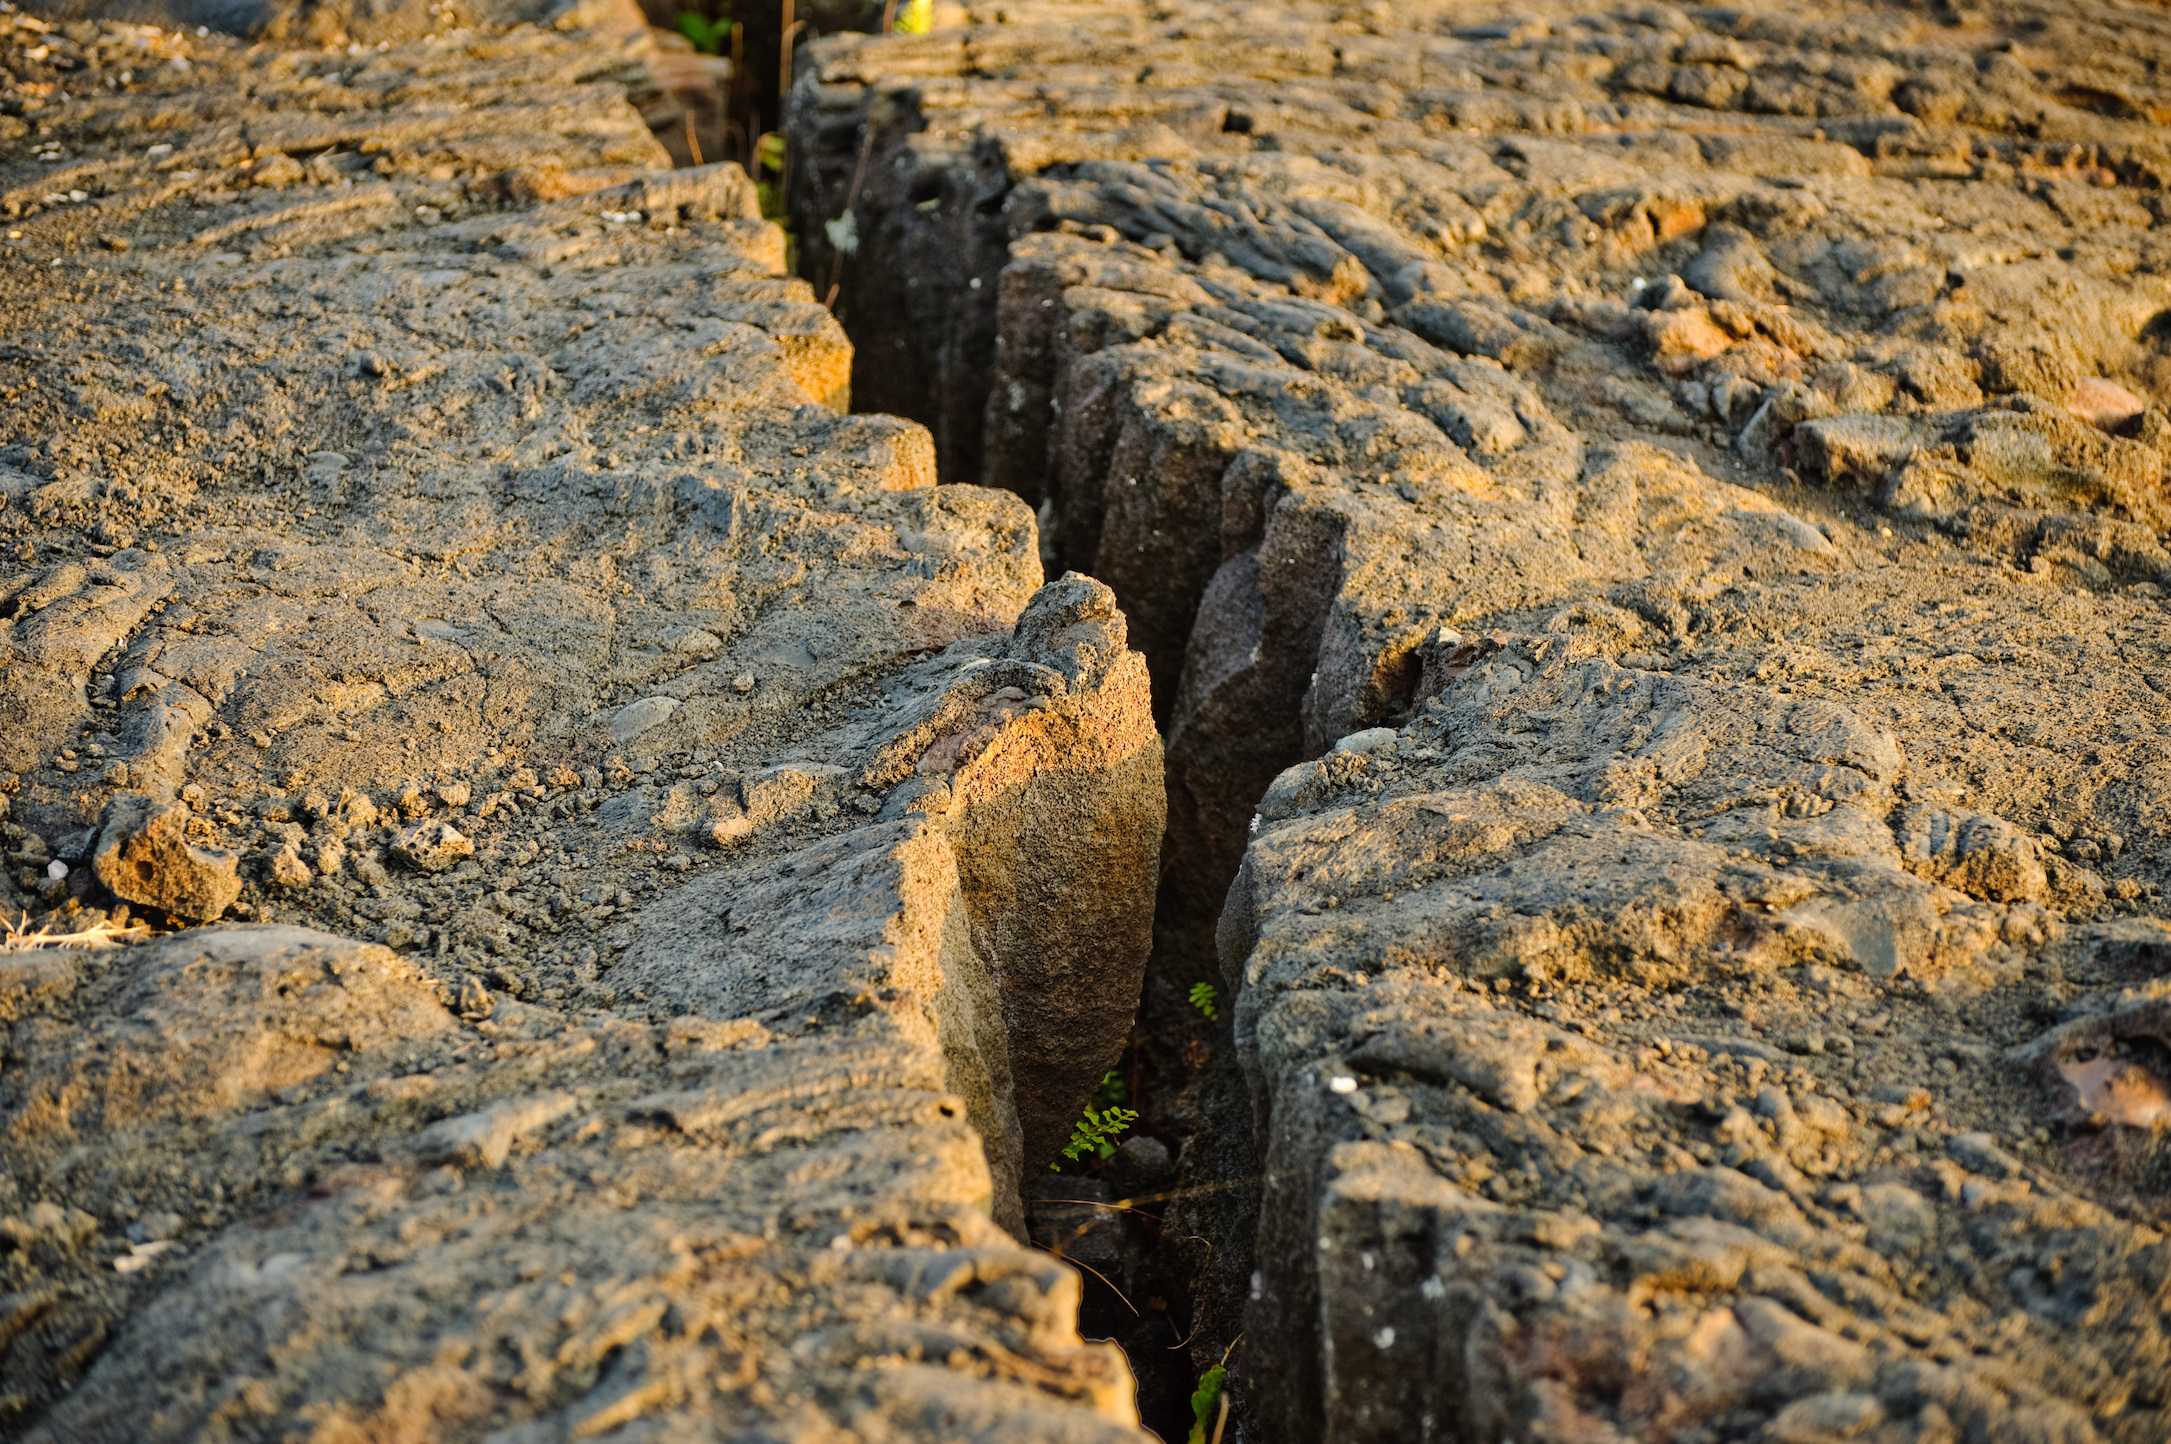 How Strike Slip Faults Form And Lead To Earthquakes